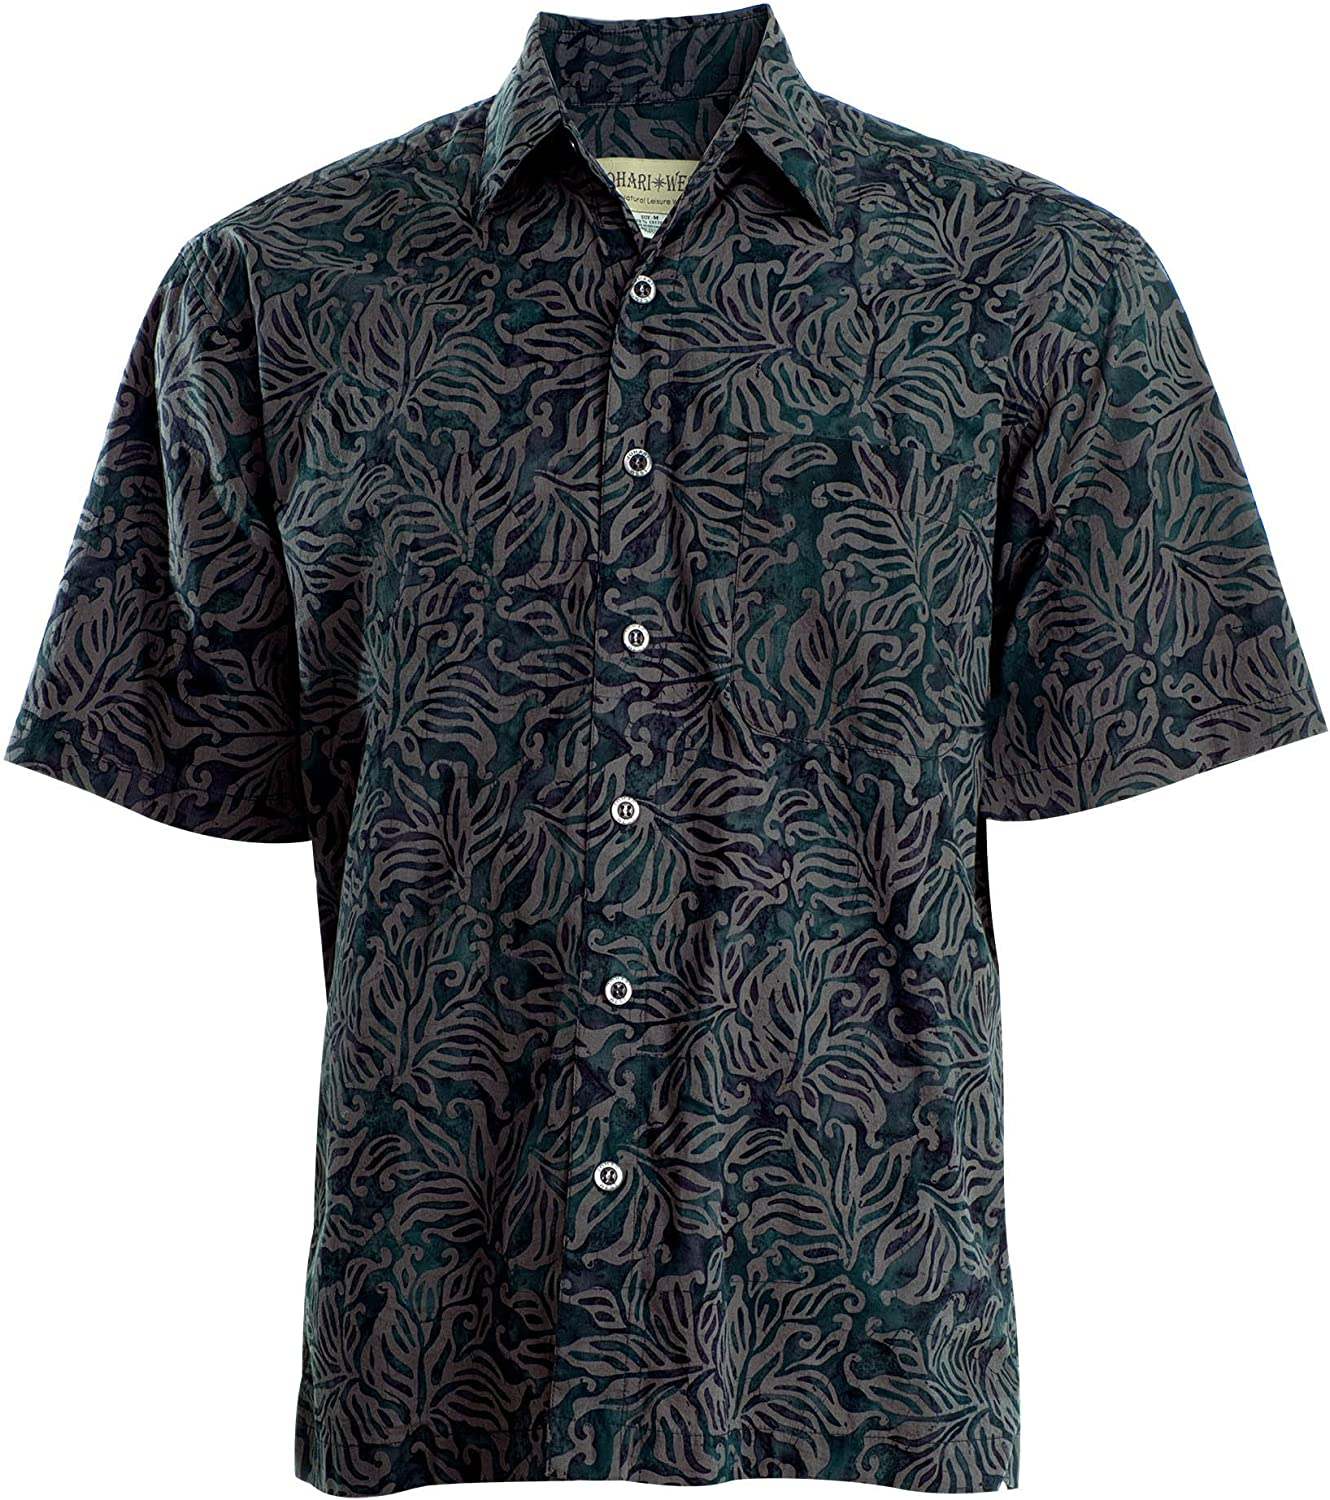 Johari West Autumn Gold Tropical Hawaiian Batik Shirt